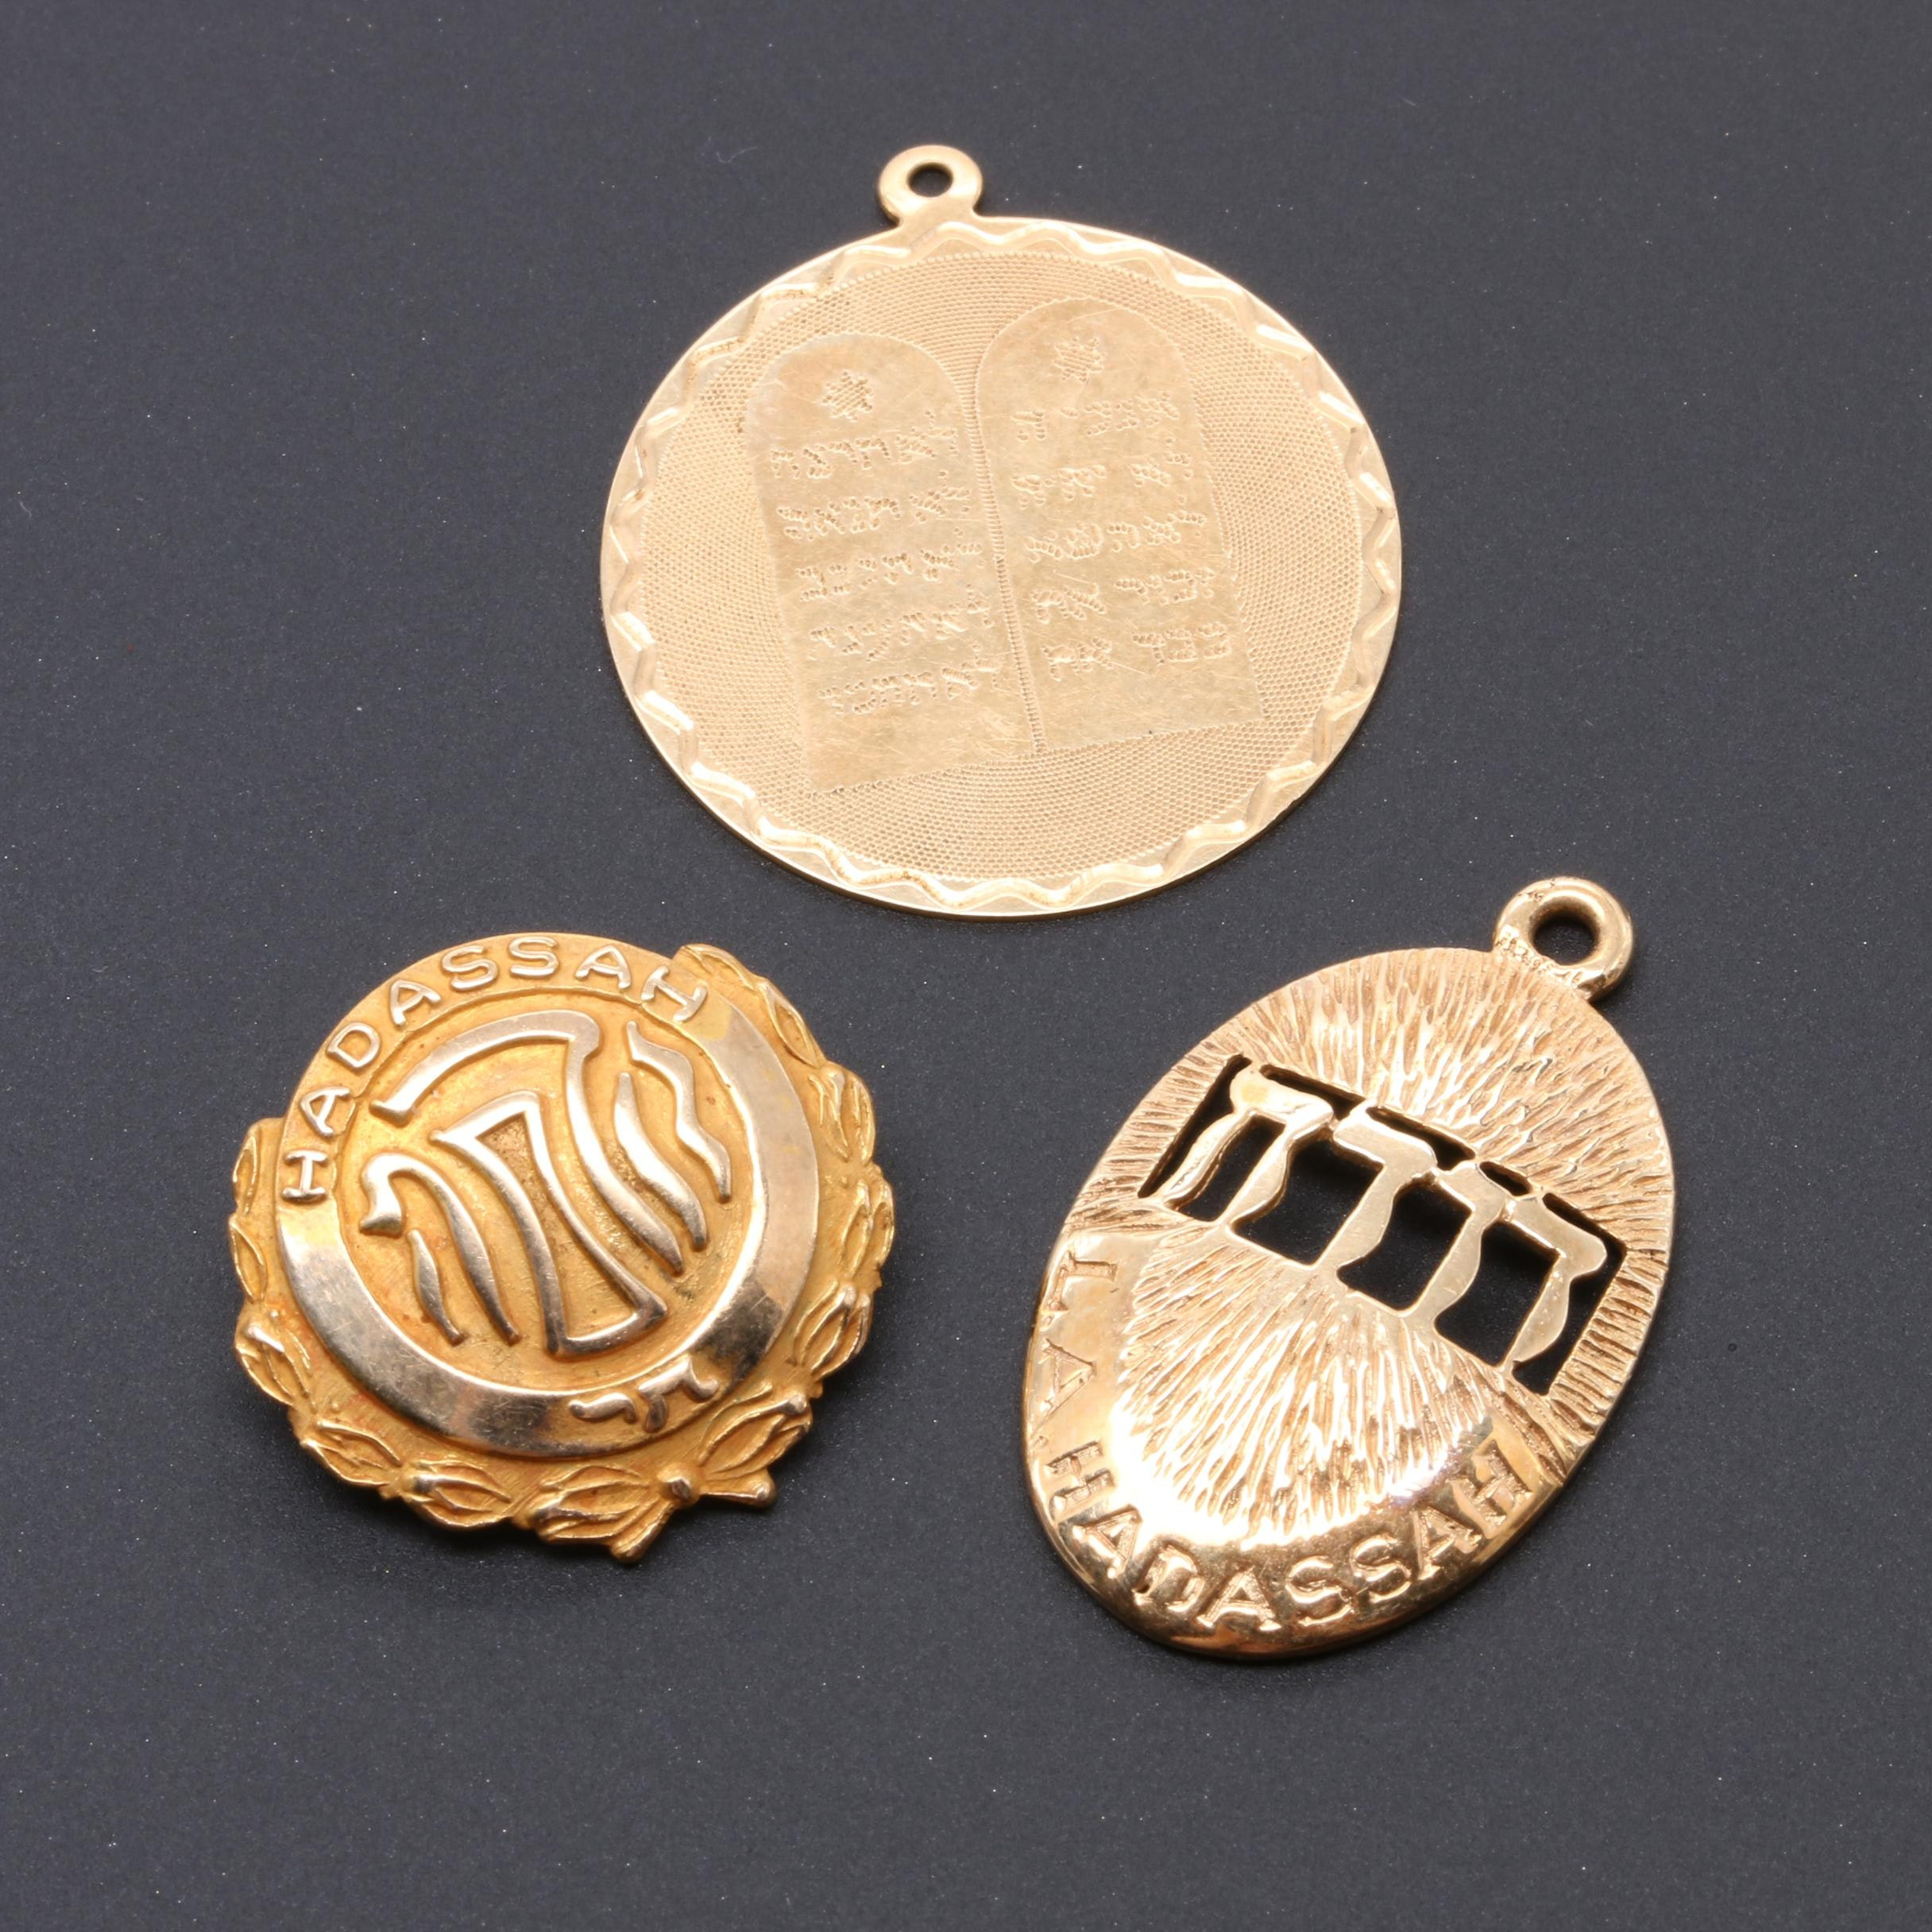 10K and 14K Yellow Gold Pendant and Pin Selection